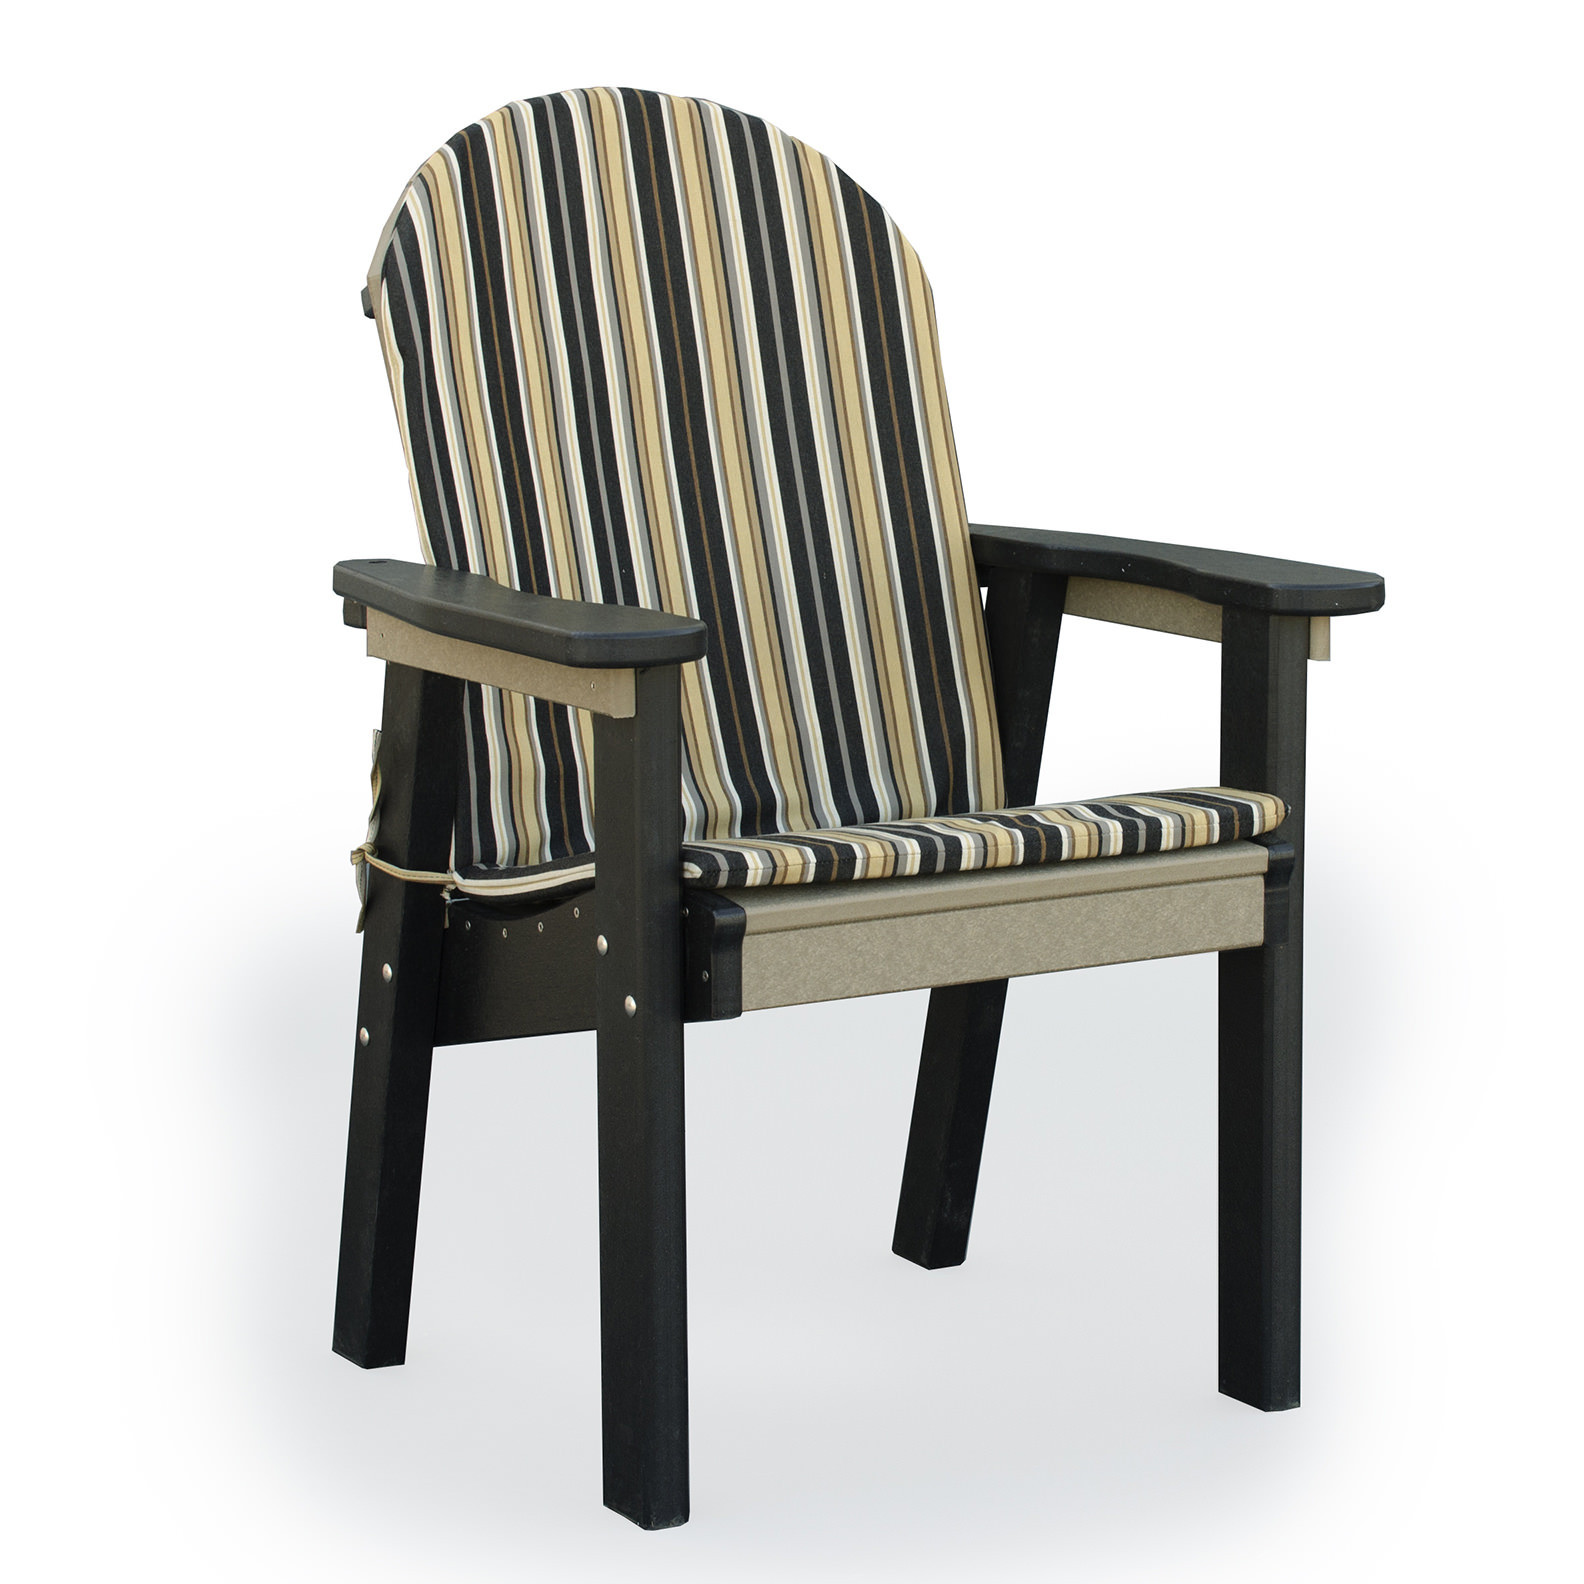 Amish Poly Wood Seat Cushion for Great Bay Dining Chair